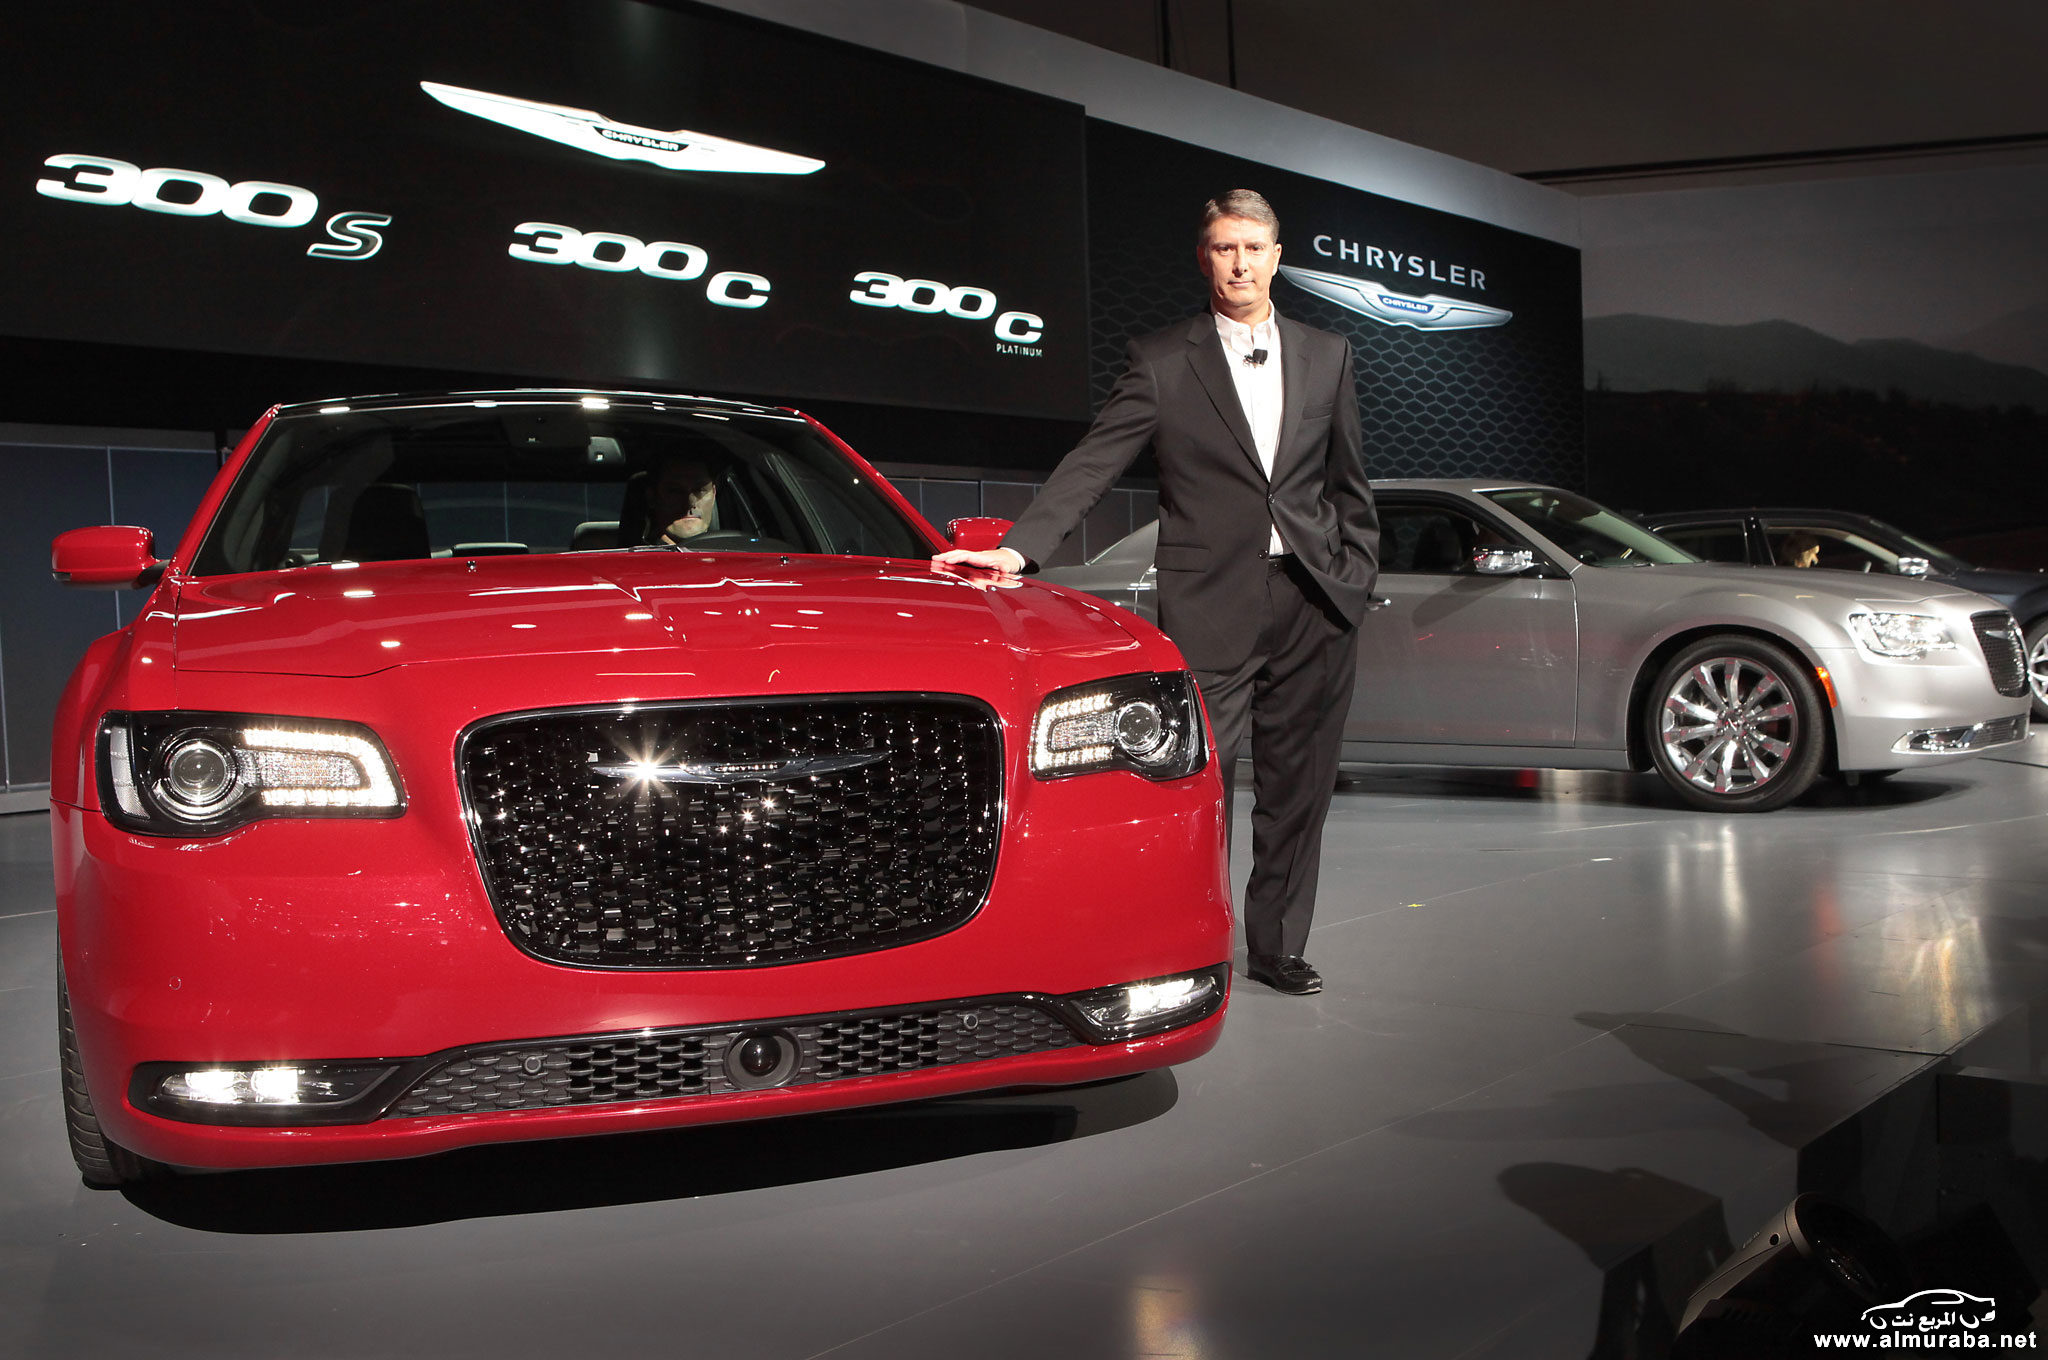 2015-chrysler-300s-on-stage